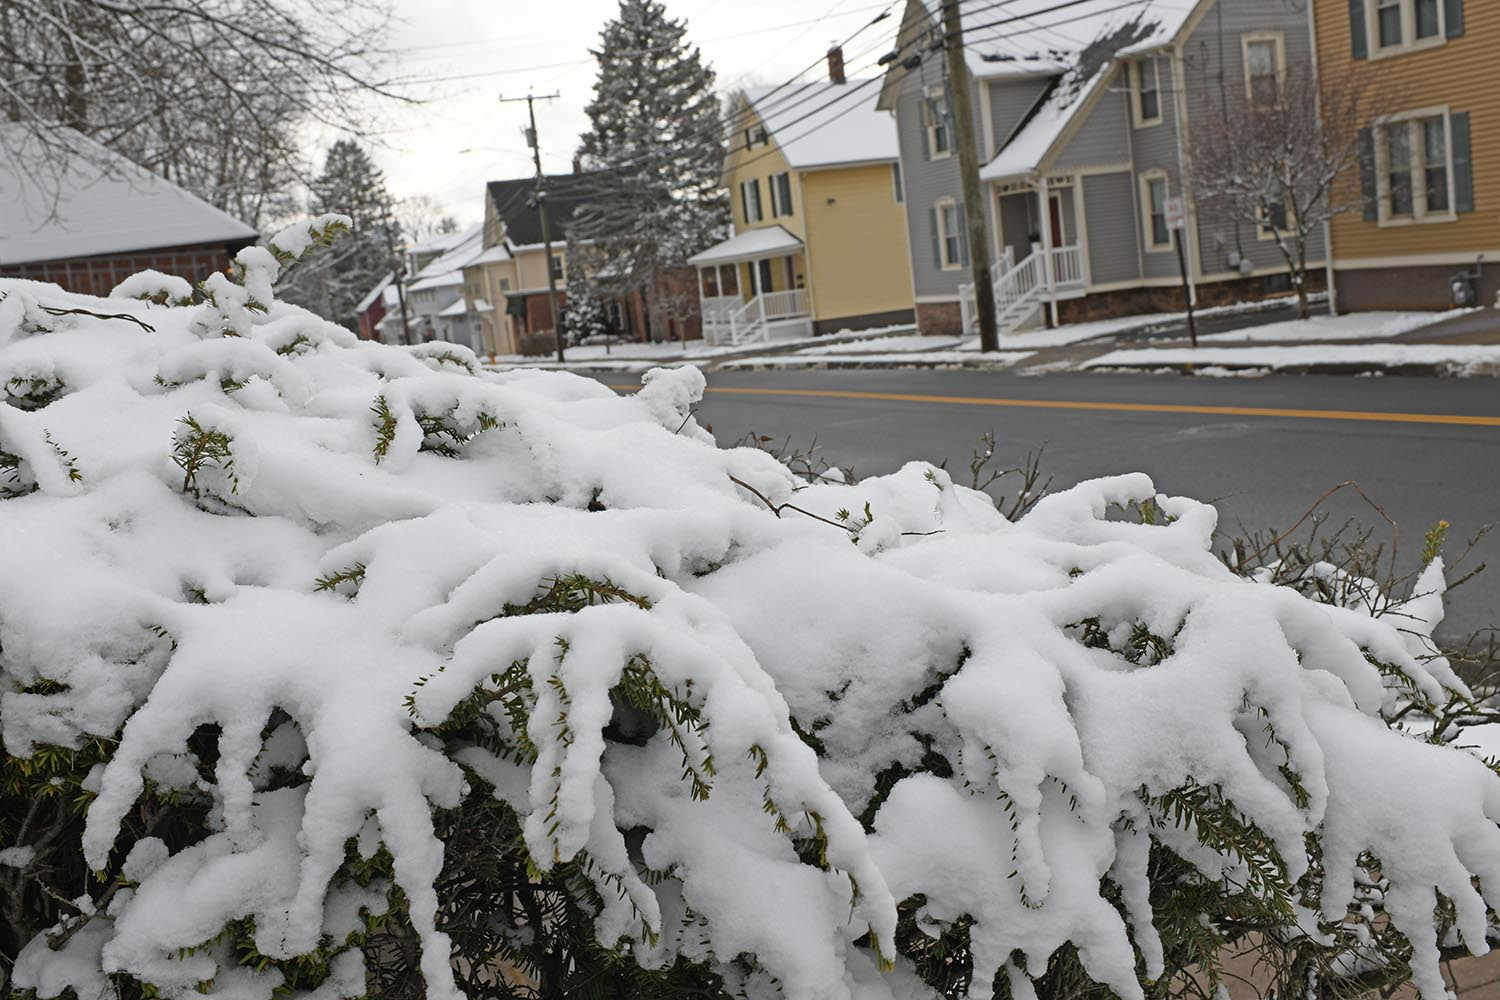 Snow covers an evergreen hedge on Pine Street near several wood-frame student houses.